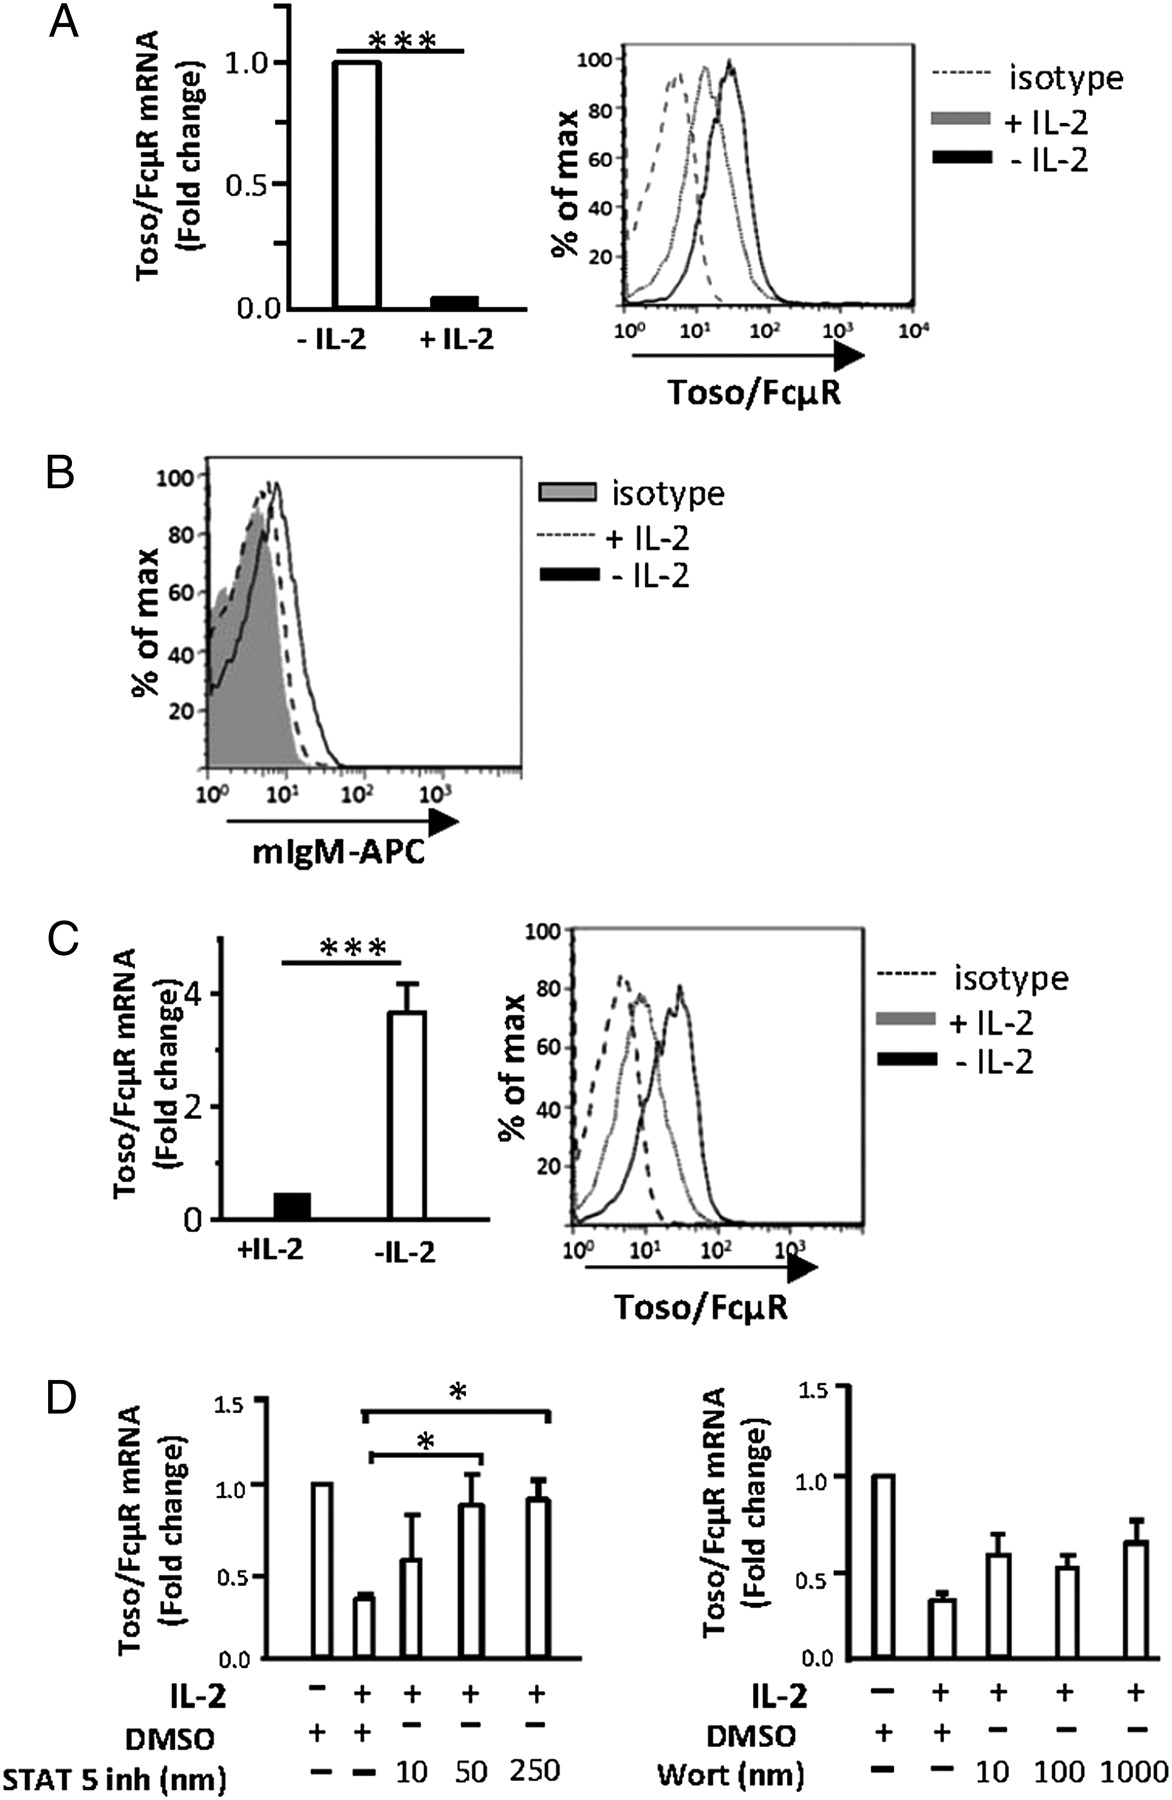 Toso, a Functional IgM Receptor, Is Regulated by IL-2 in T